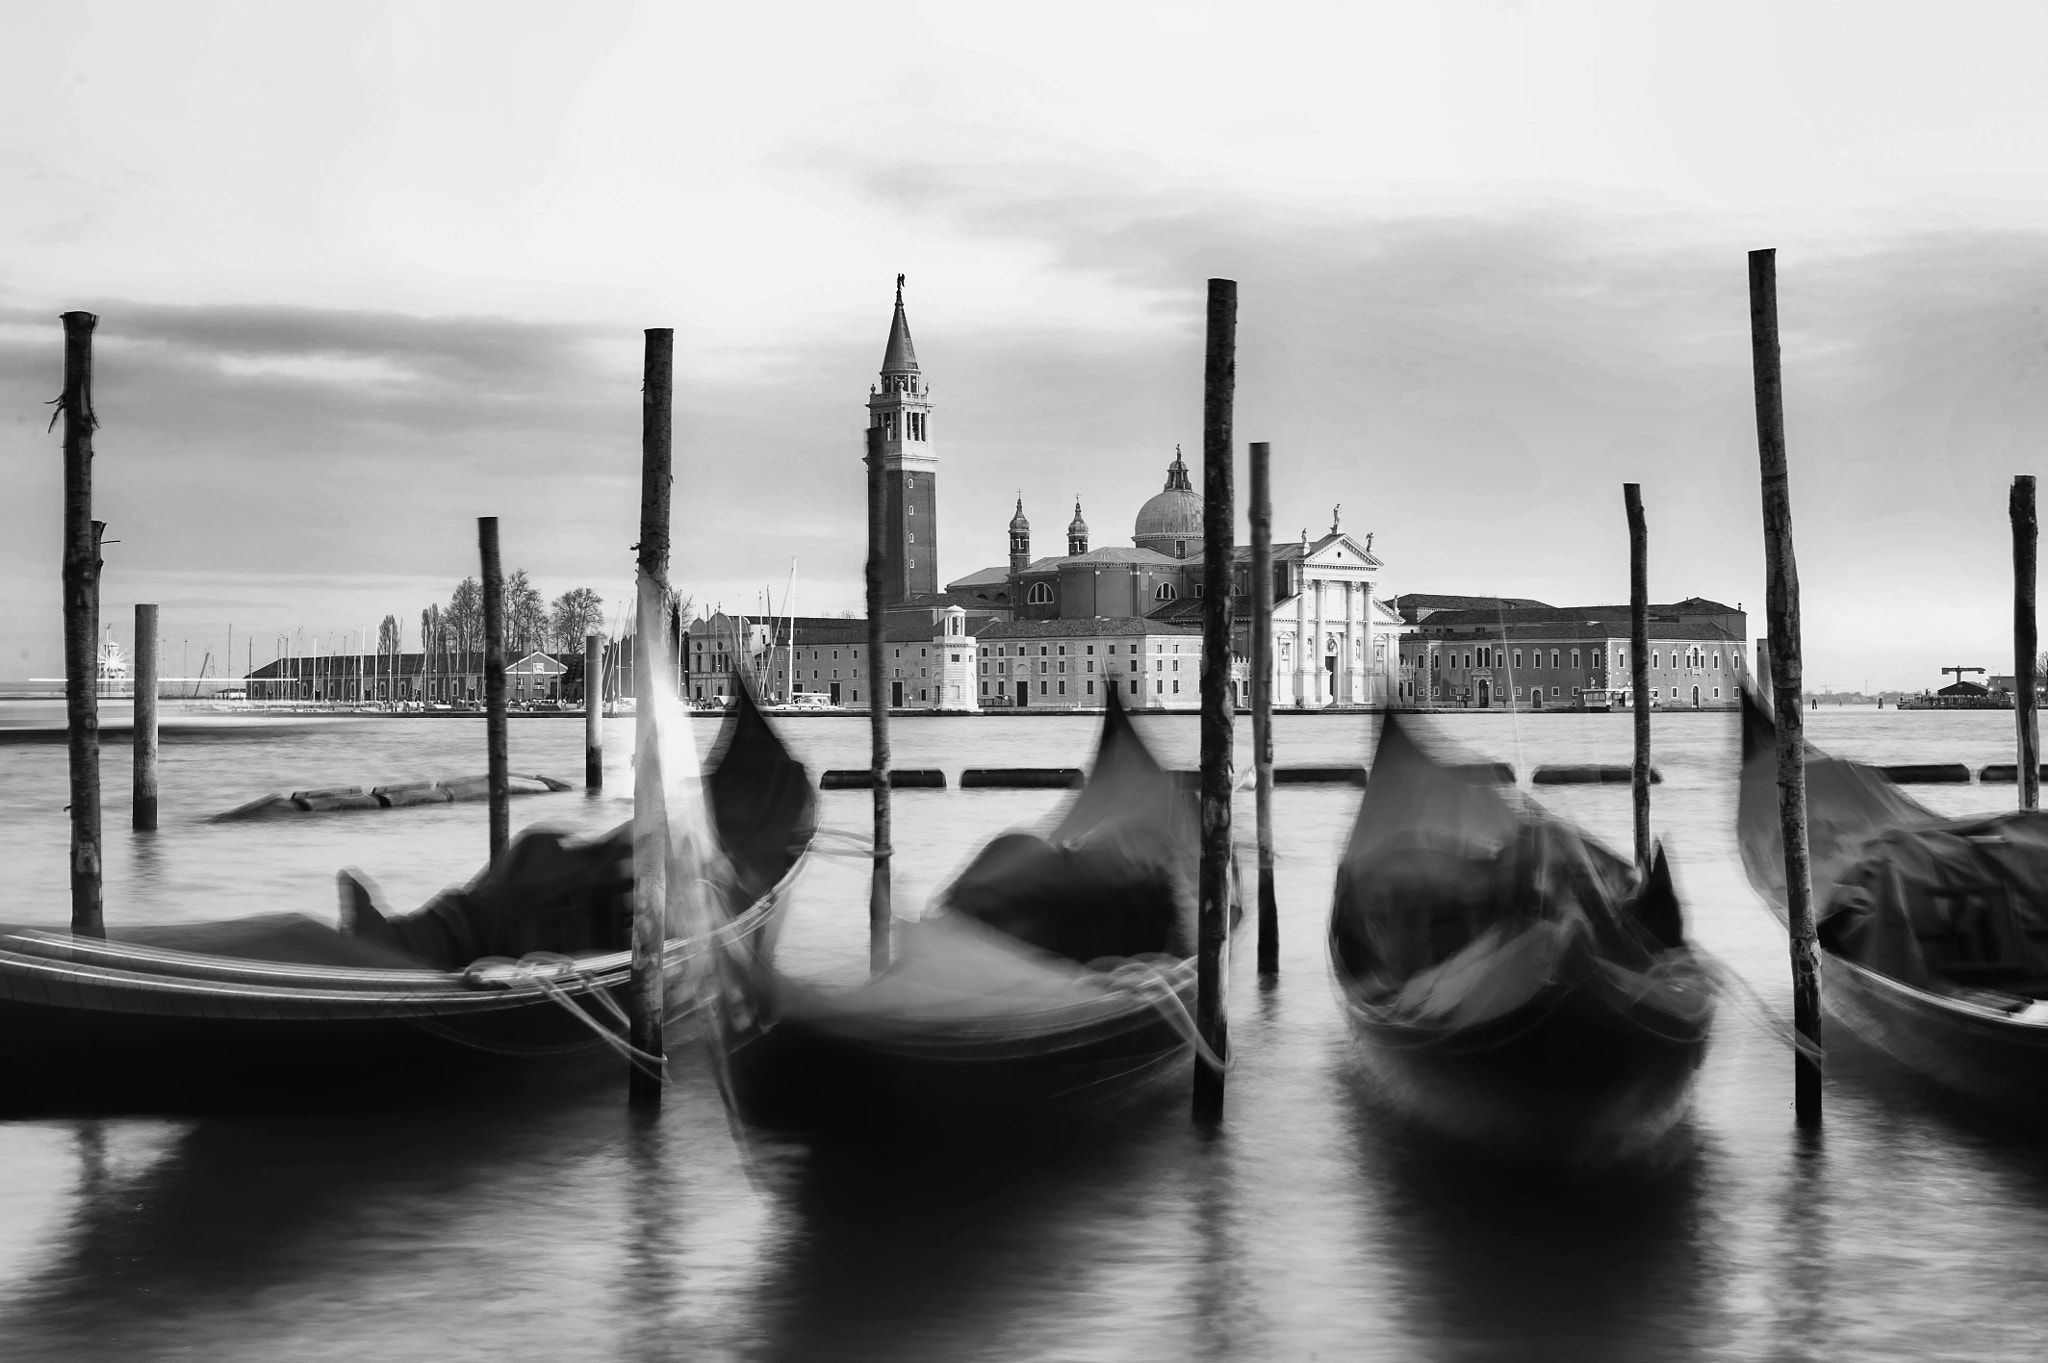 Photograph Gondolas in the evening, Venice, Italy. by Sabrina Marchi on 500px